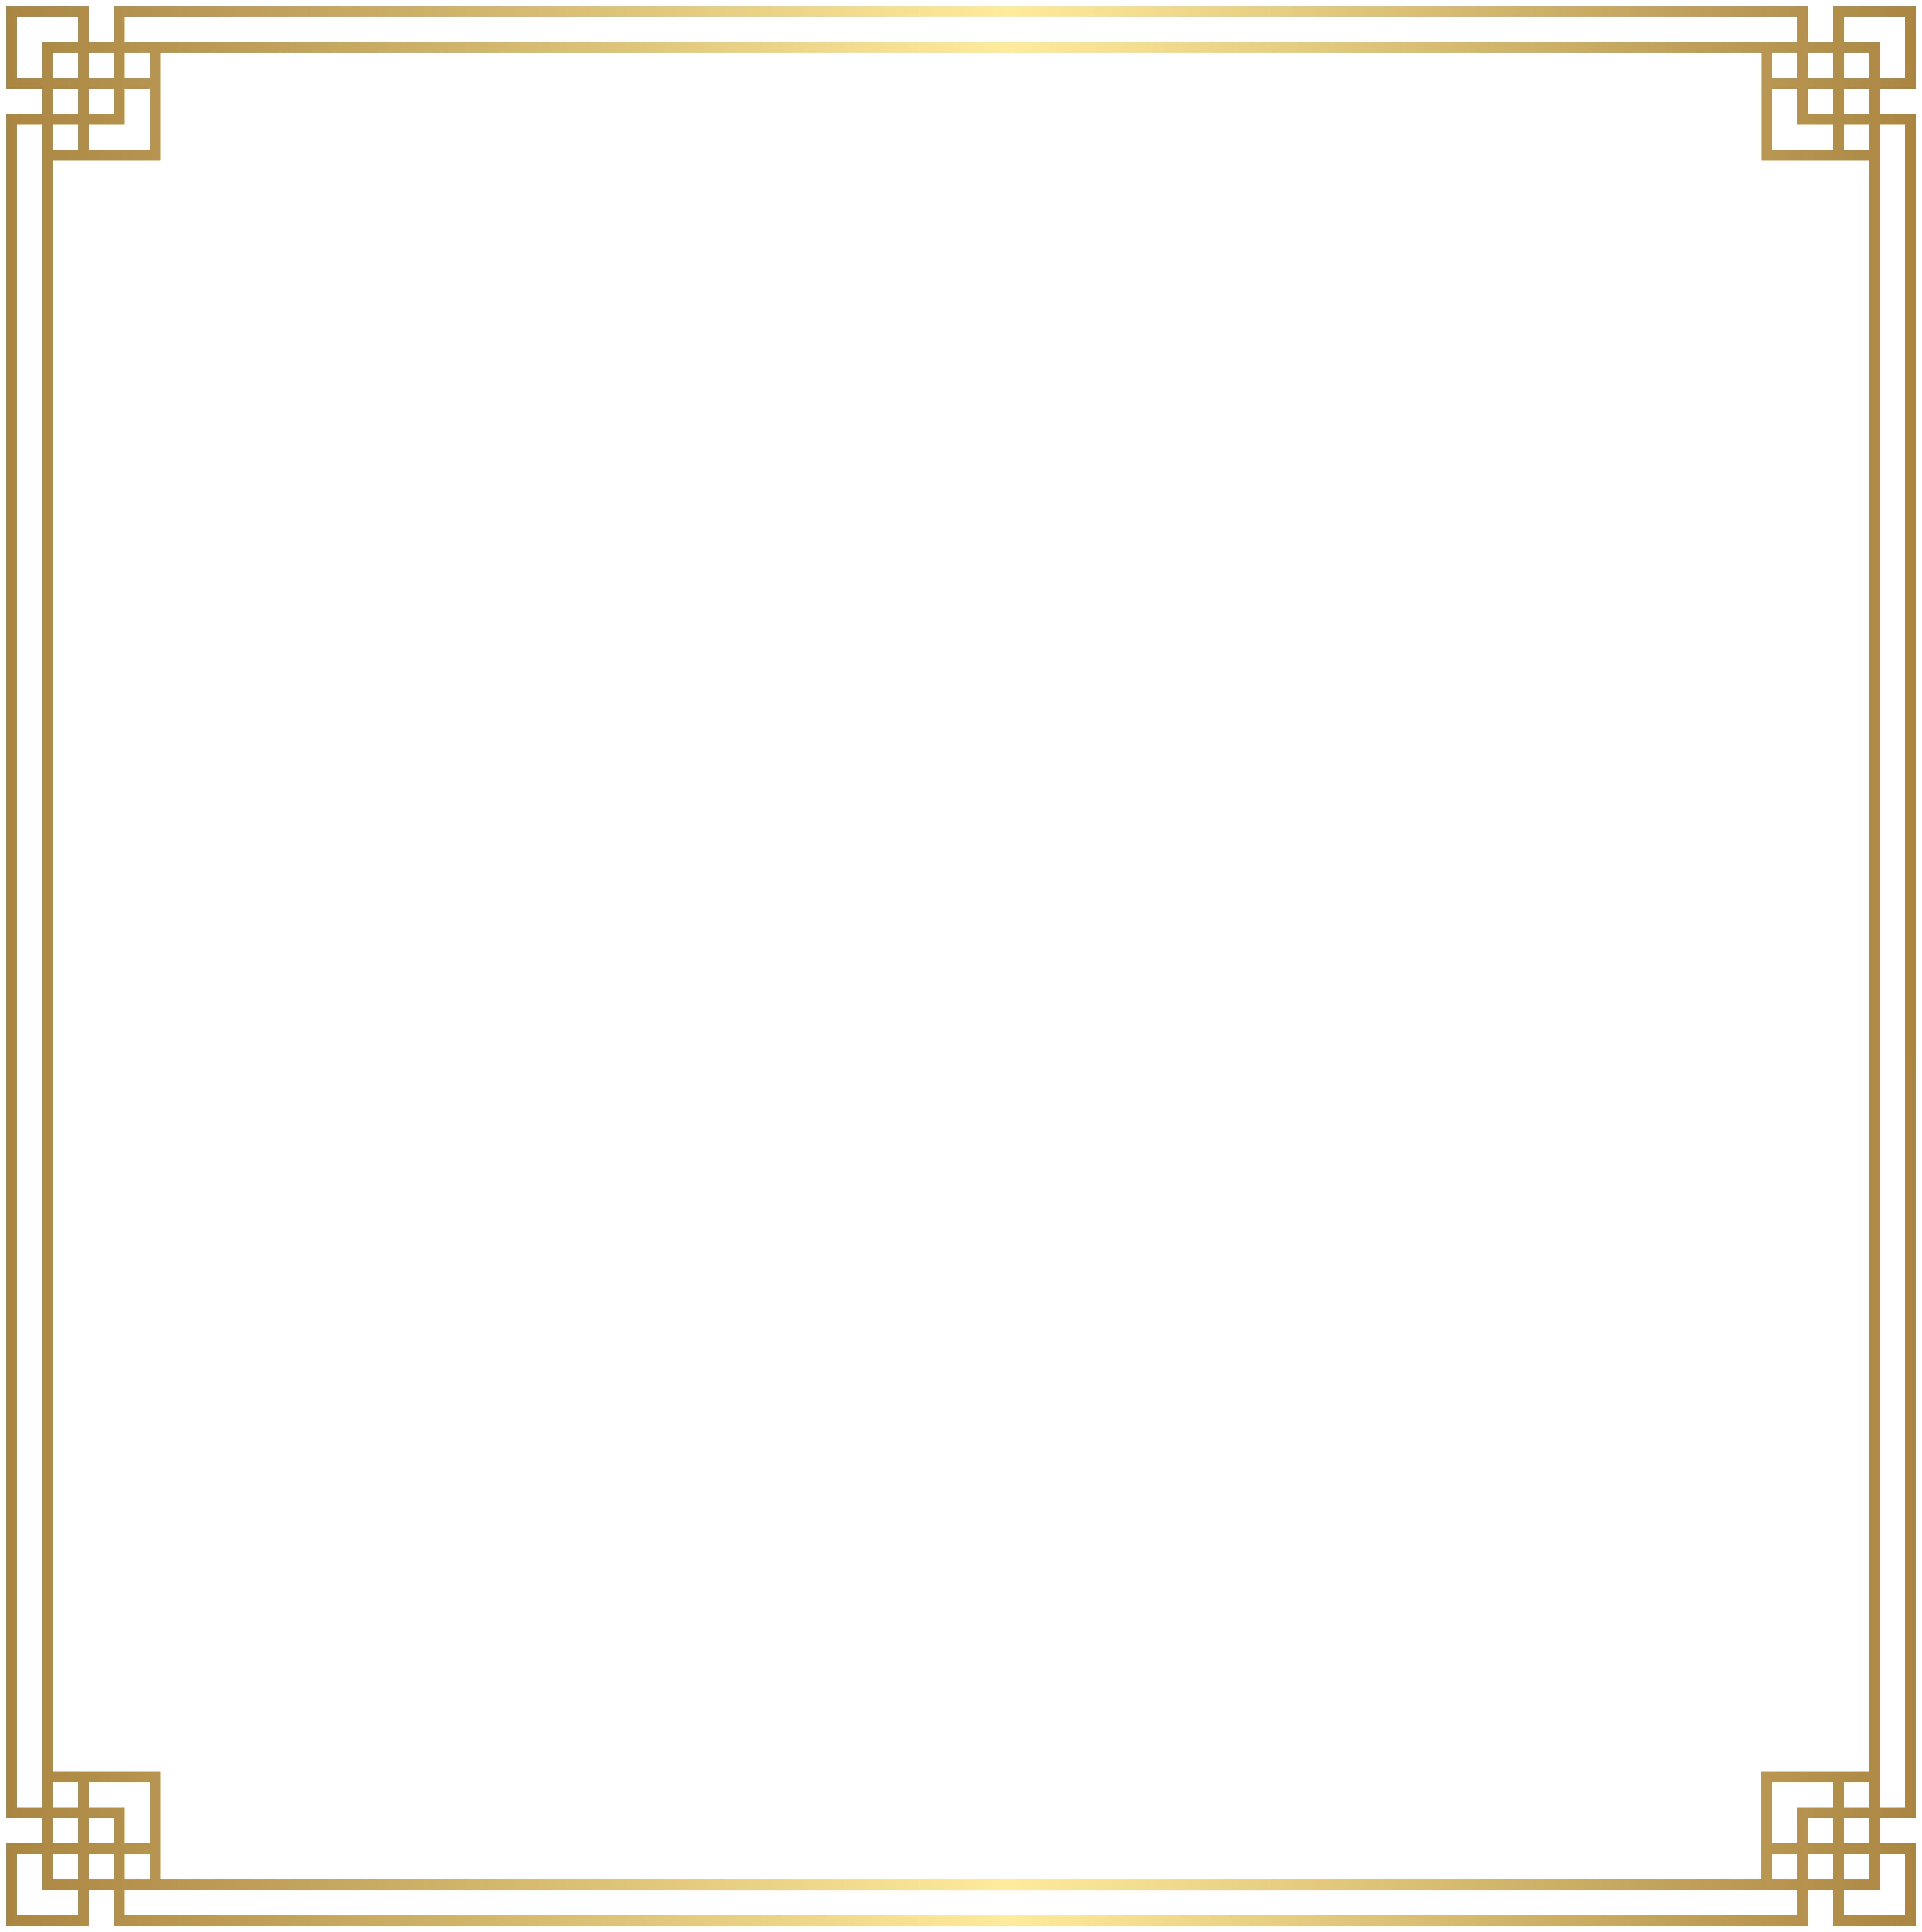 Border Frame PNG Picture PNG Images